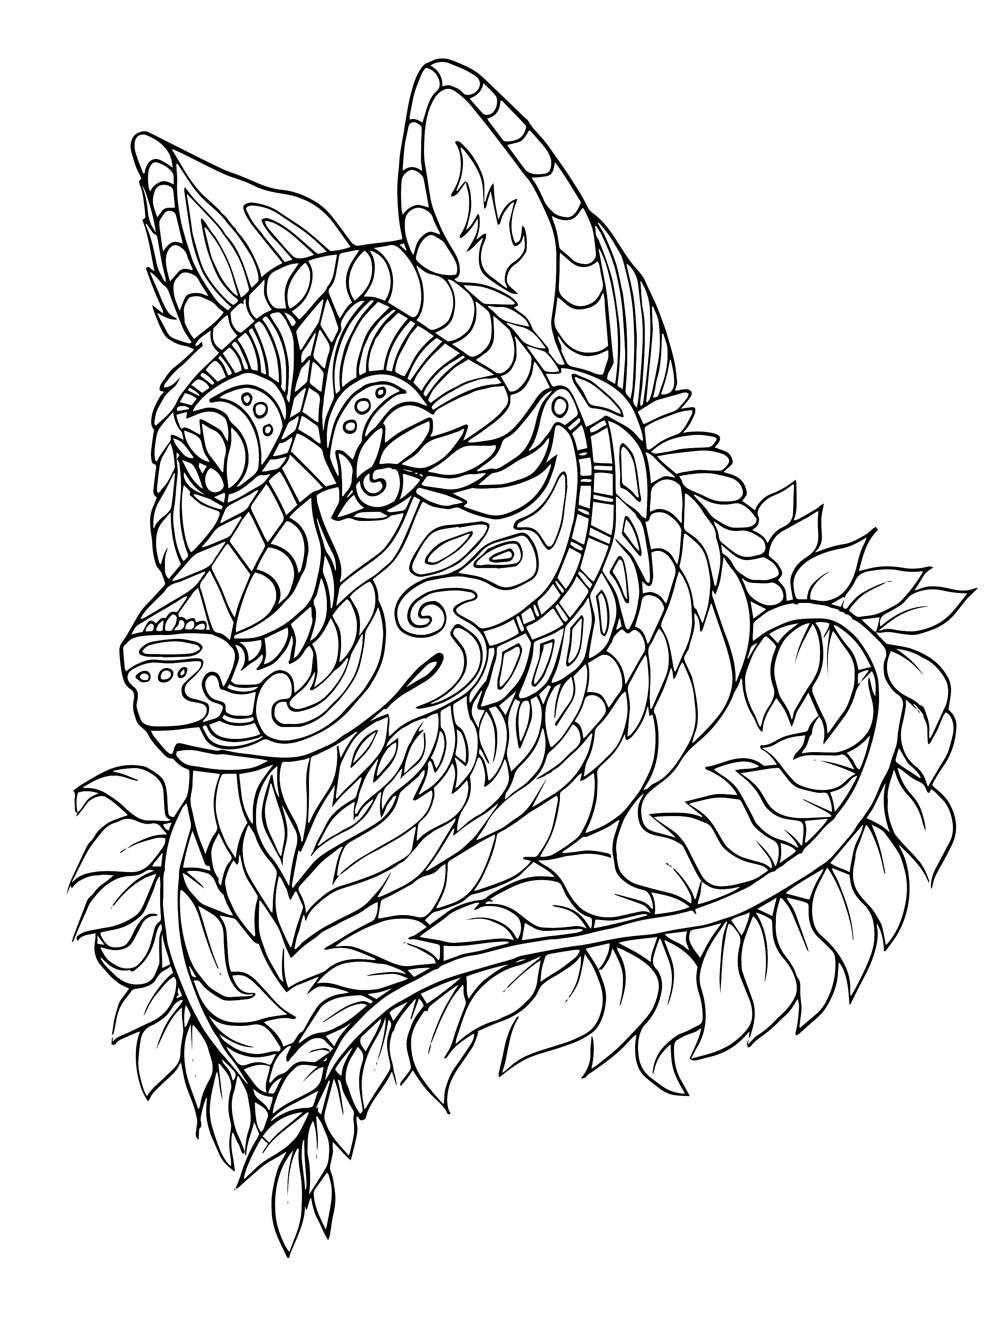 Best ideas about Stress Free Coloring Sheets For Kids . Save or Pin Stress Relief Coloring Pages Animals Free Now.